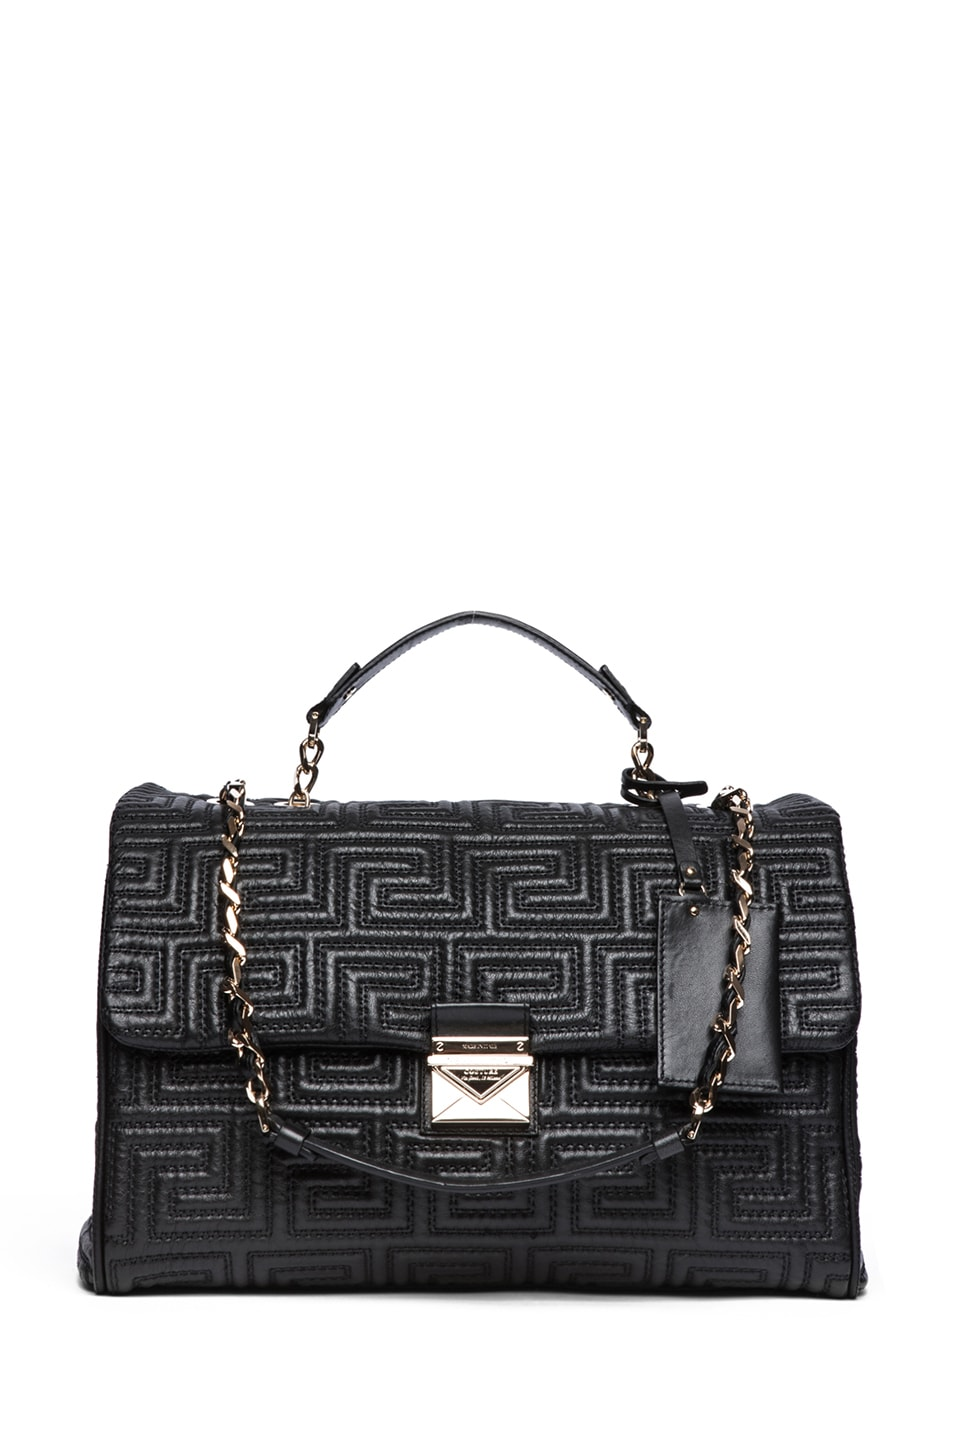 Image 1 of VERSACE Large Couture Bag in Black